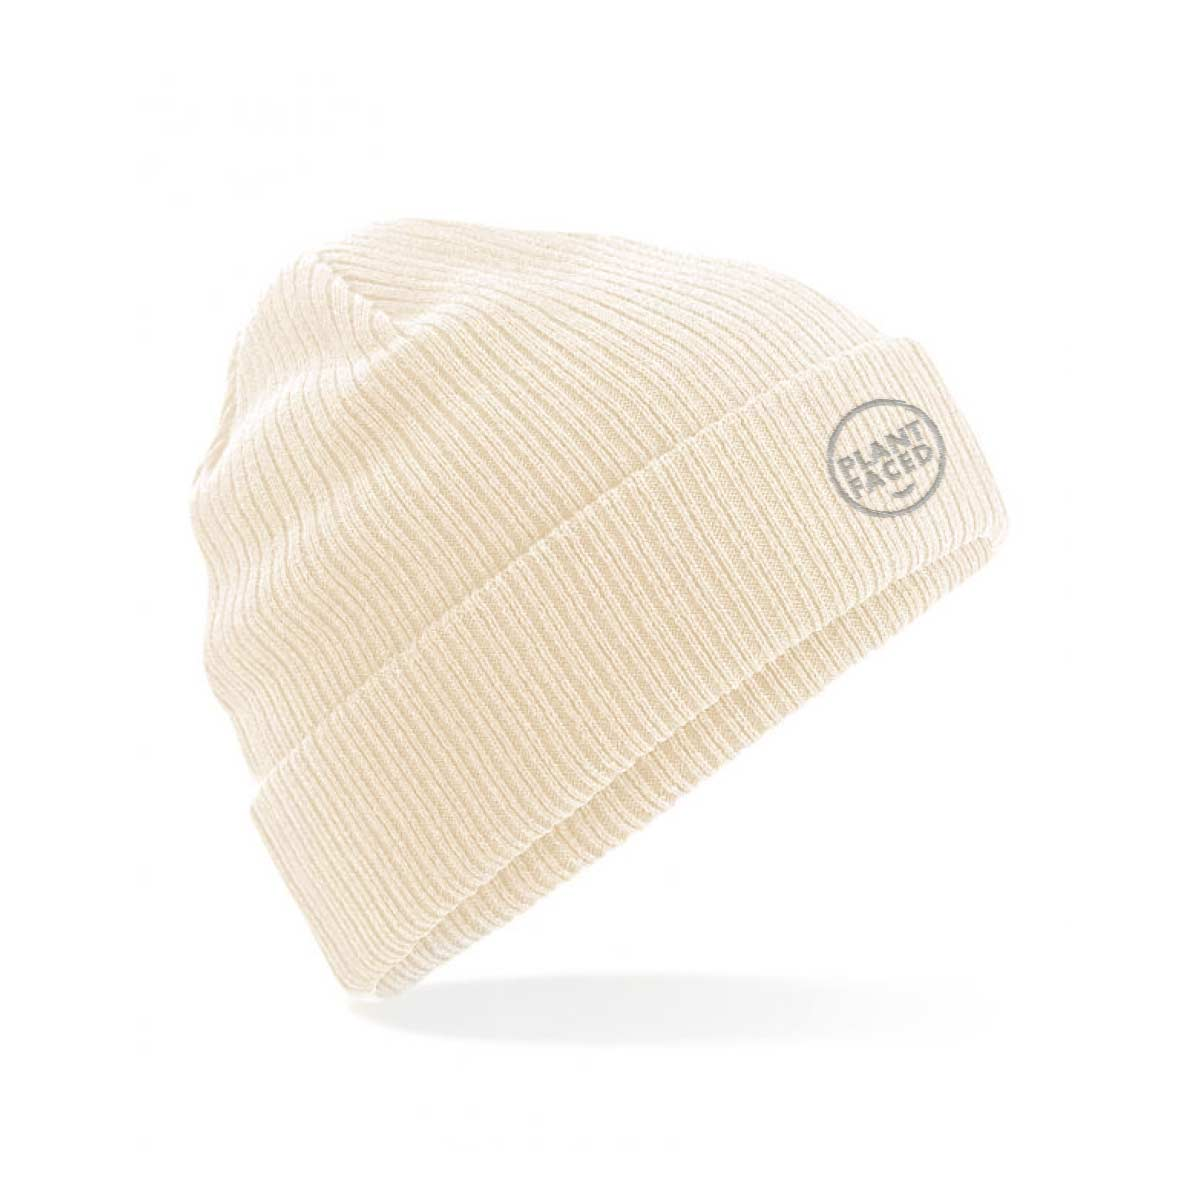 Plant Faced Organic Beanie - Fisherman Oat